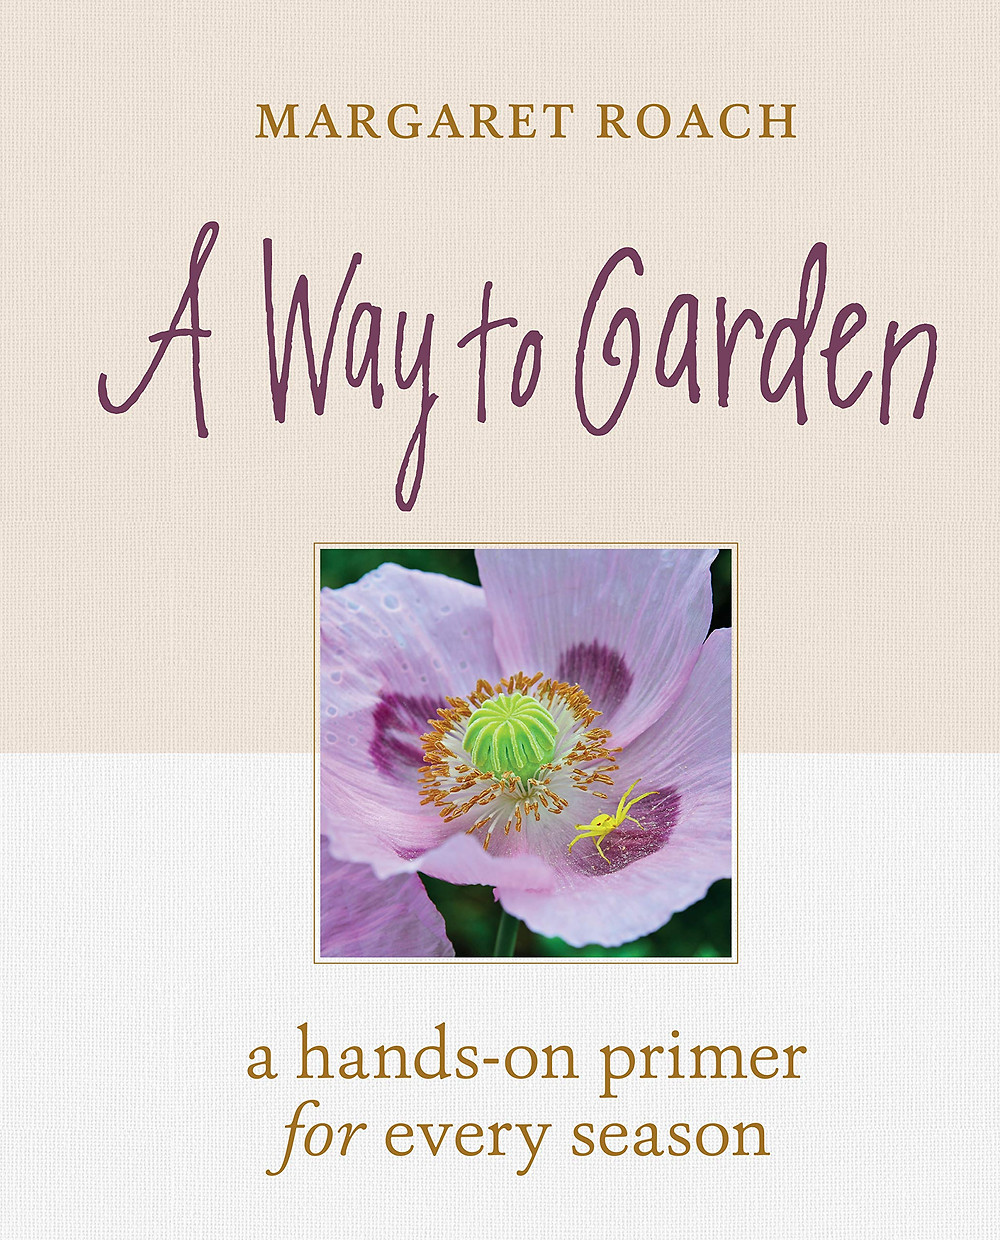 A WAY TO GARDEN (2019, Timber Press) CELEBRATING 21 YEARS, Photo Courtesy of Margaret Roach. All rights reserved.